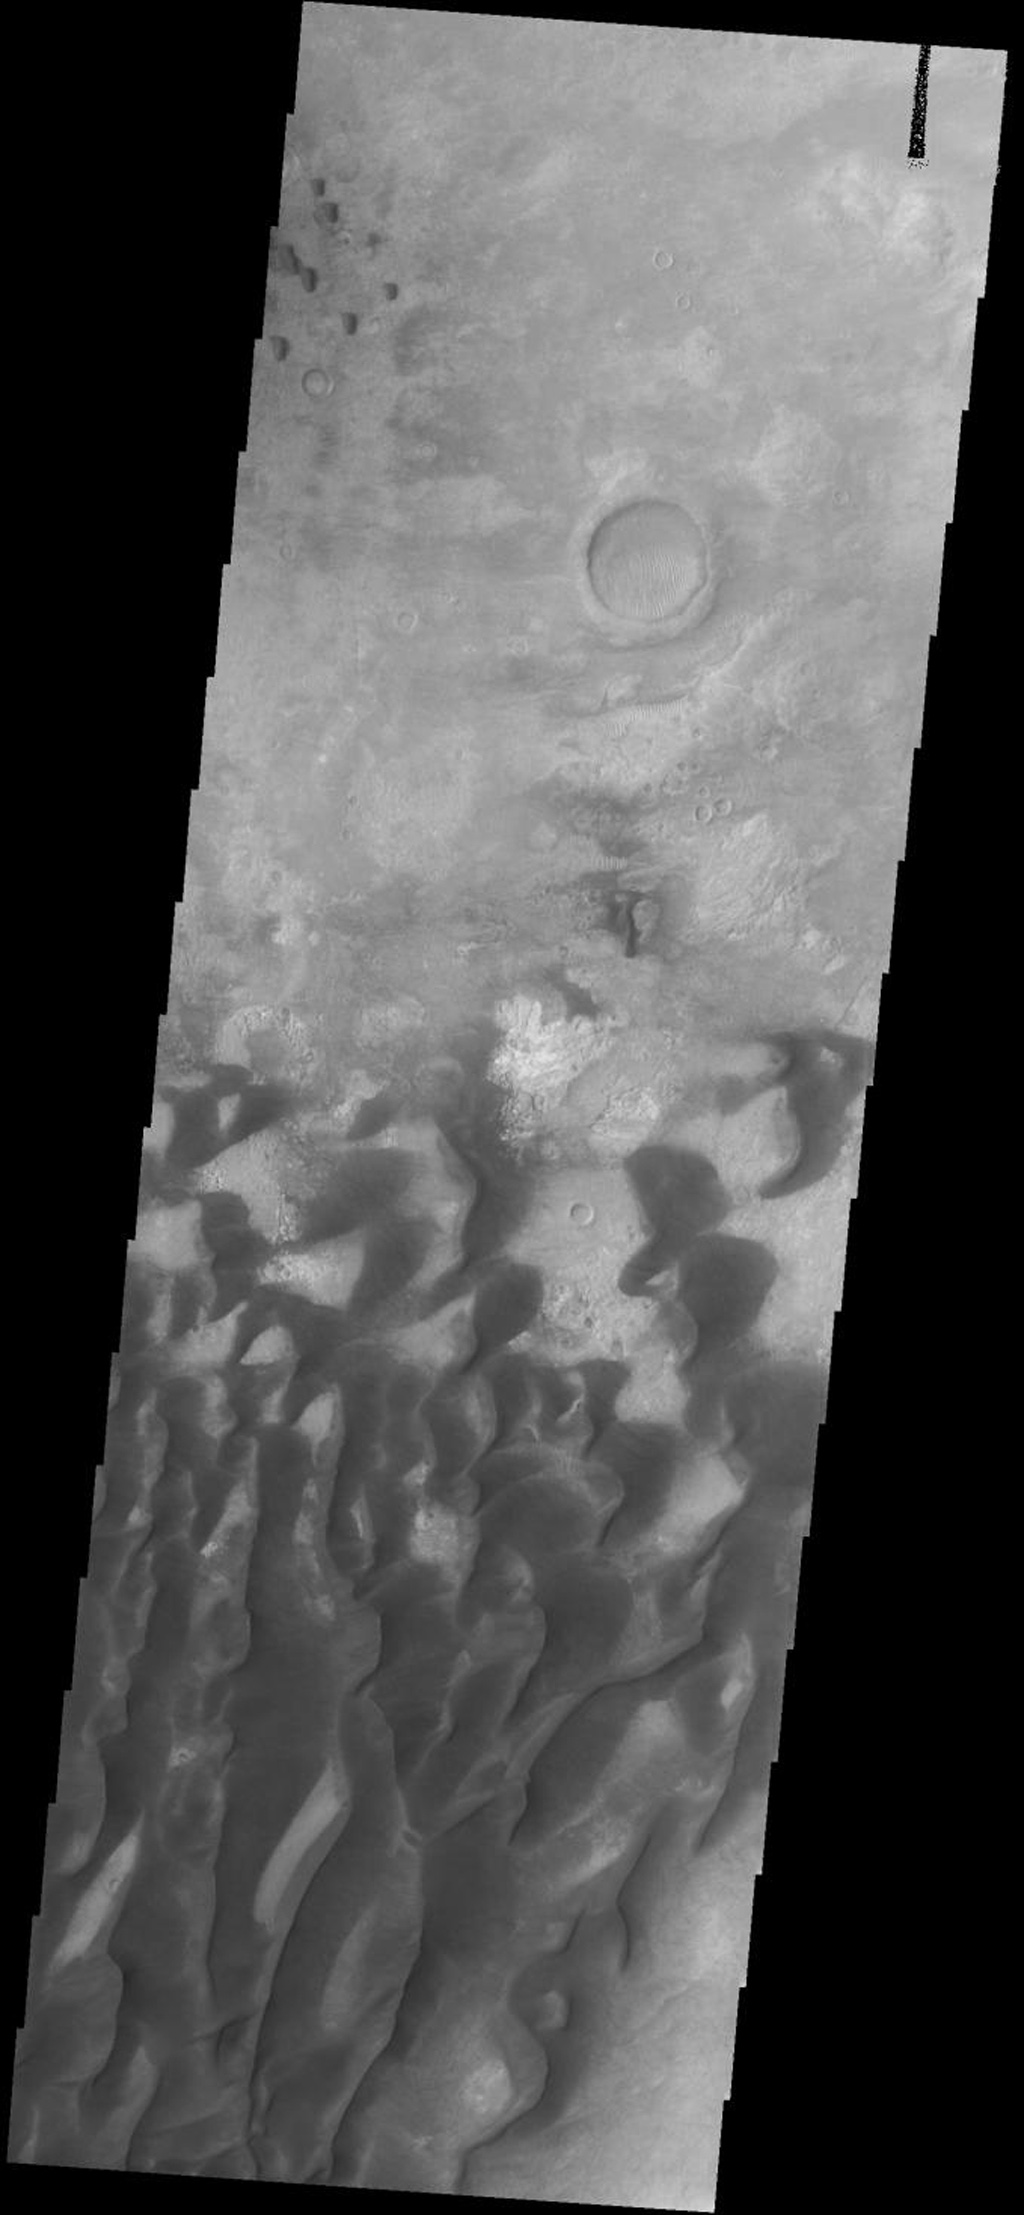 These sand dunes are located on the floor of Kaiser Crater on Mars as seen by NASA's 2001 Mars Odyssey spacecraft.